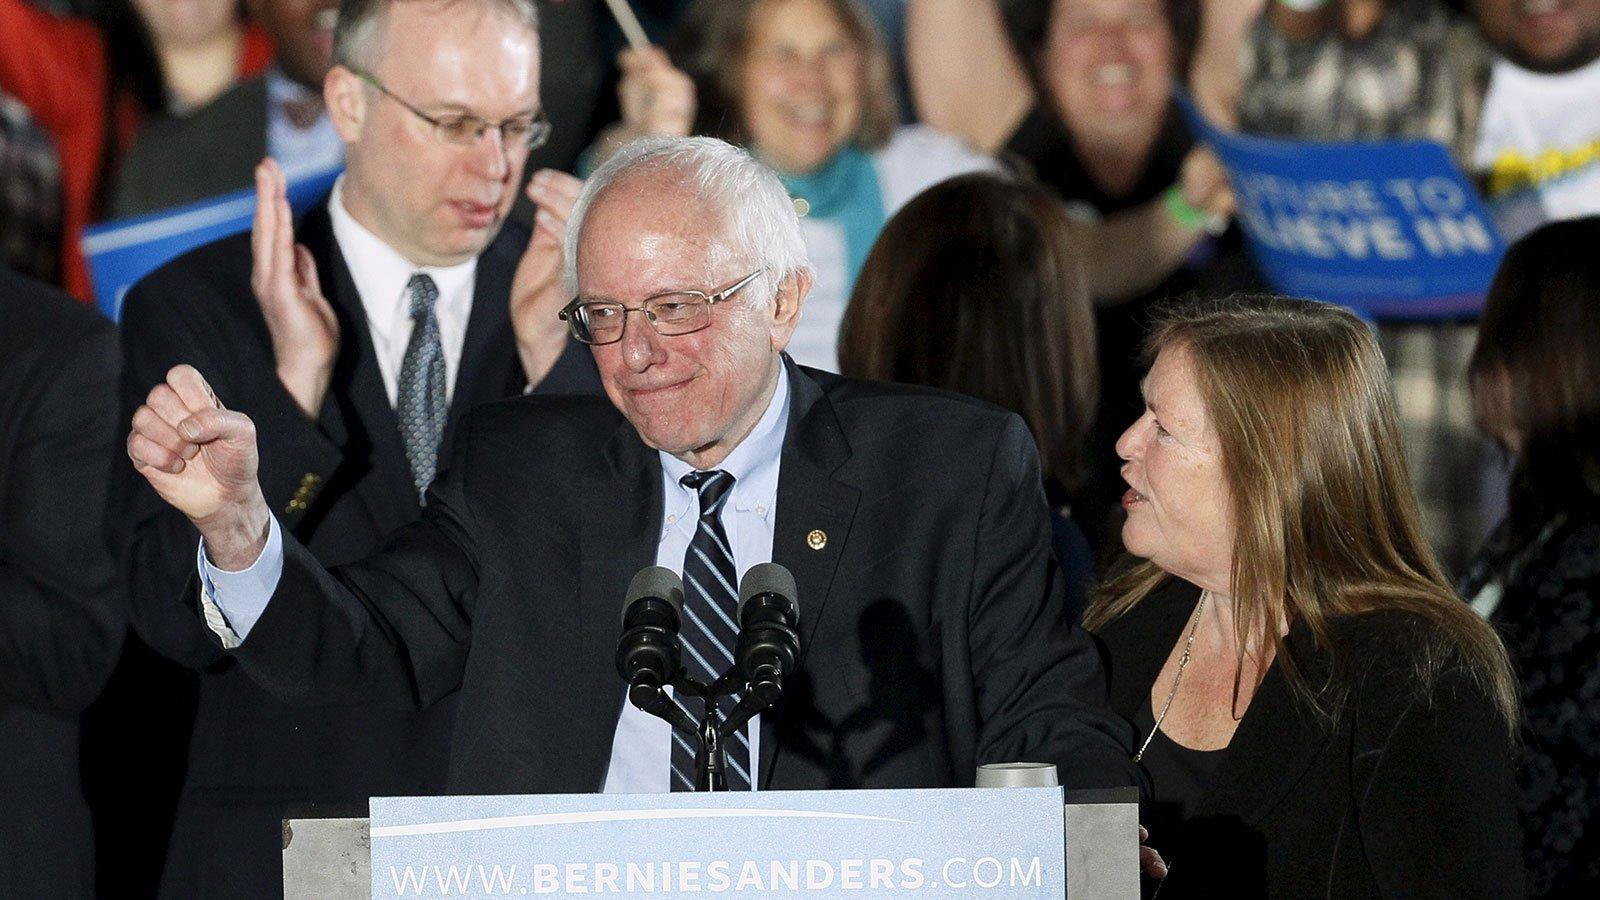 Bernie Sanders Won in a Landslide — but Could Still Lose New Hampshire